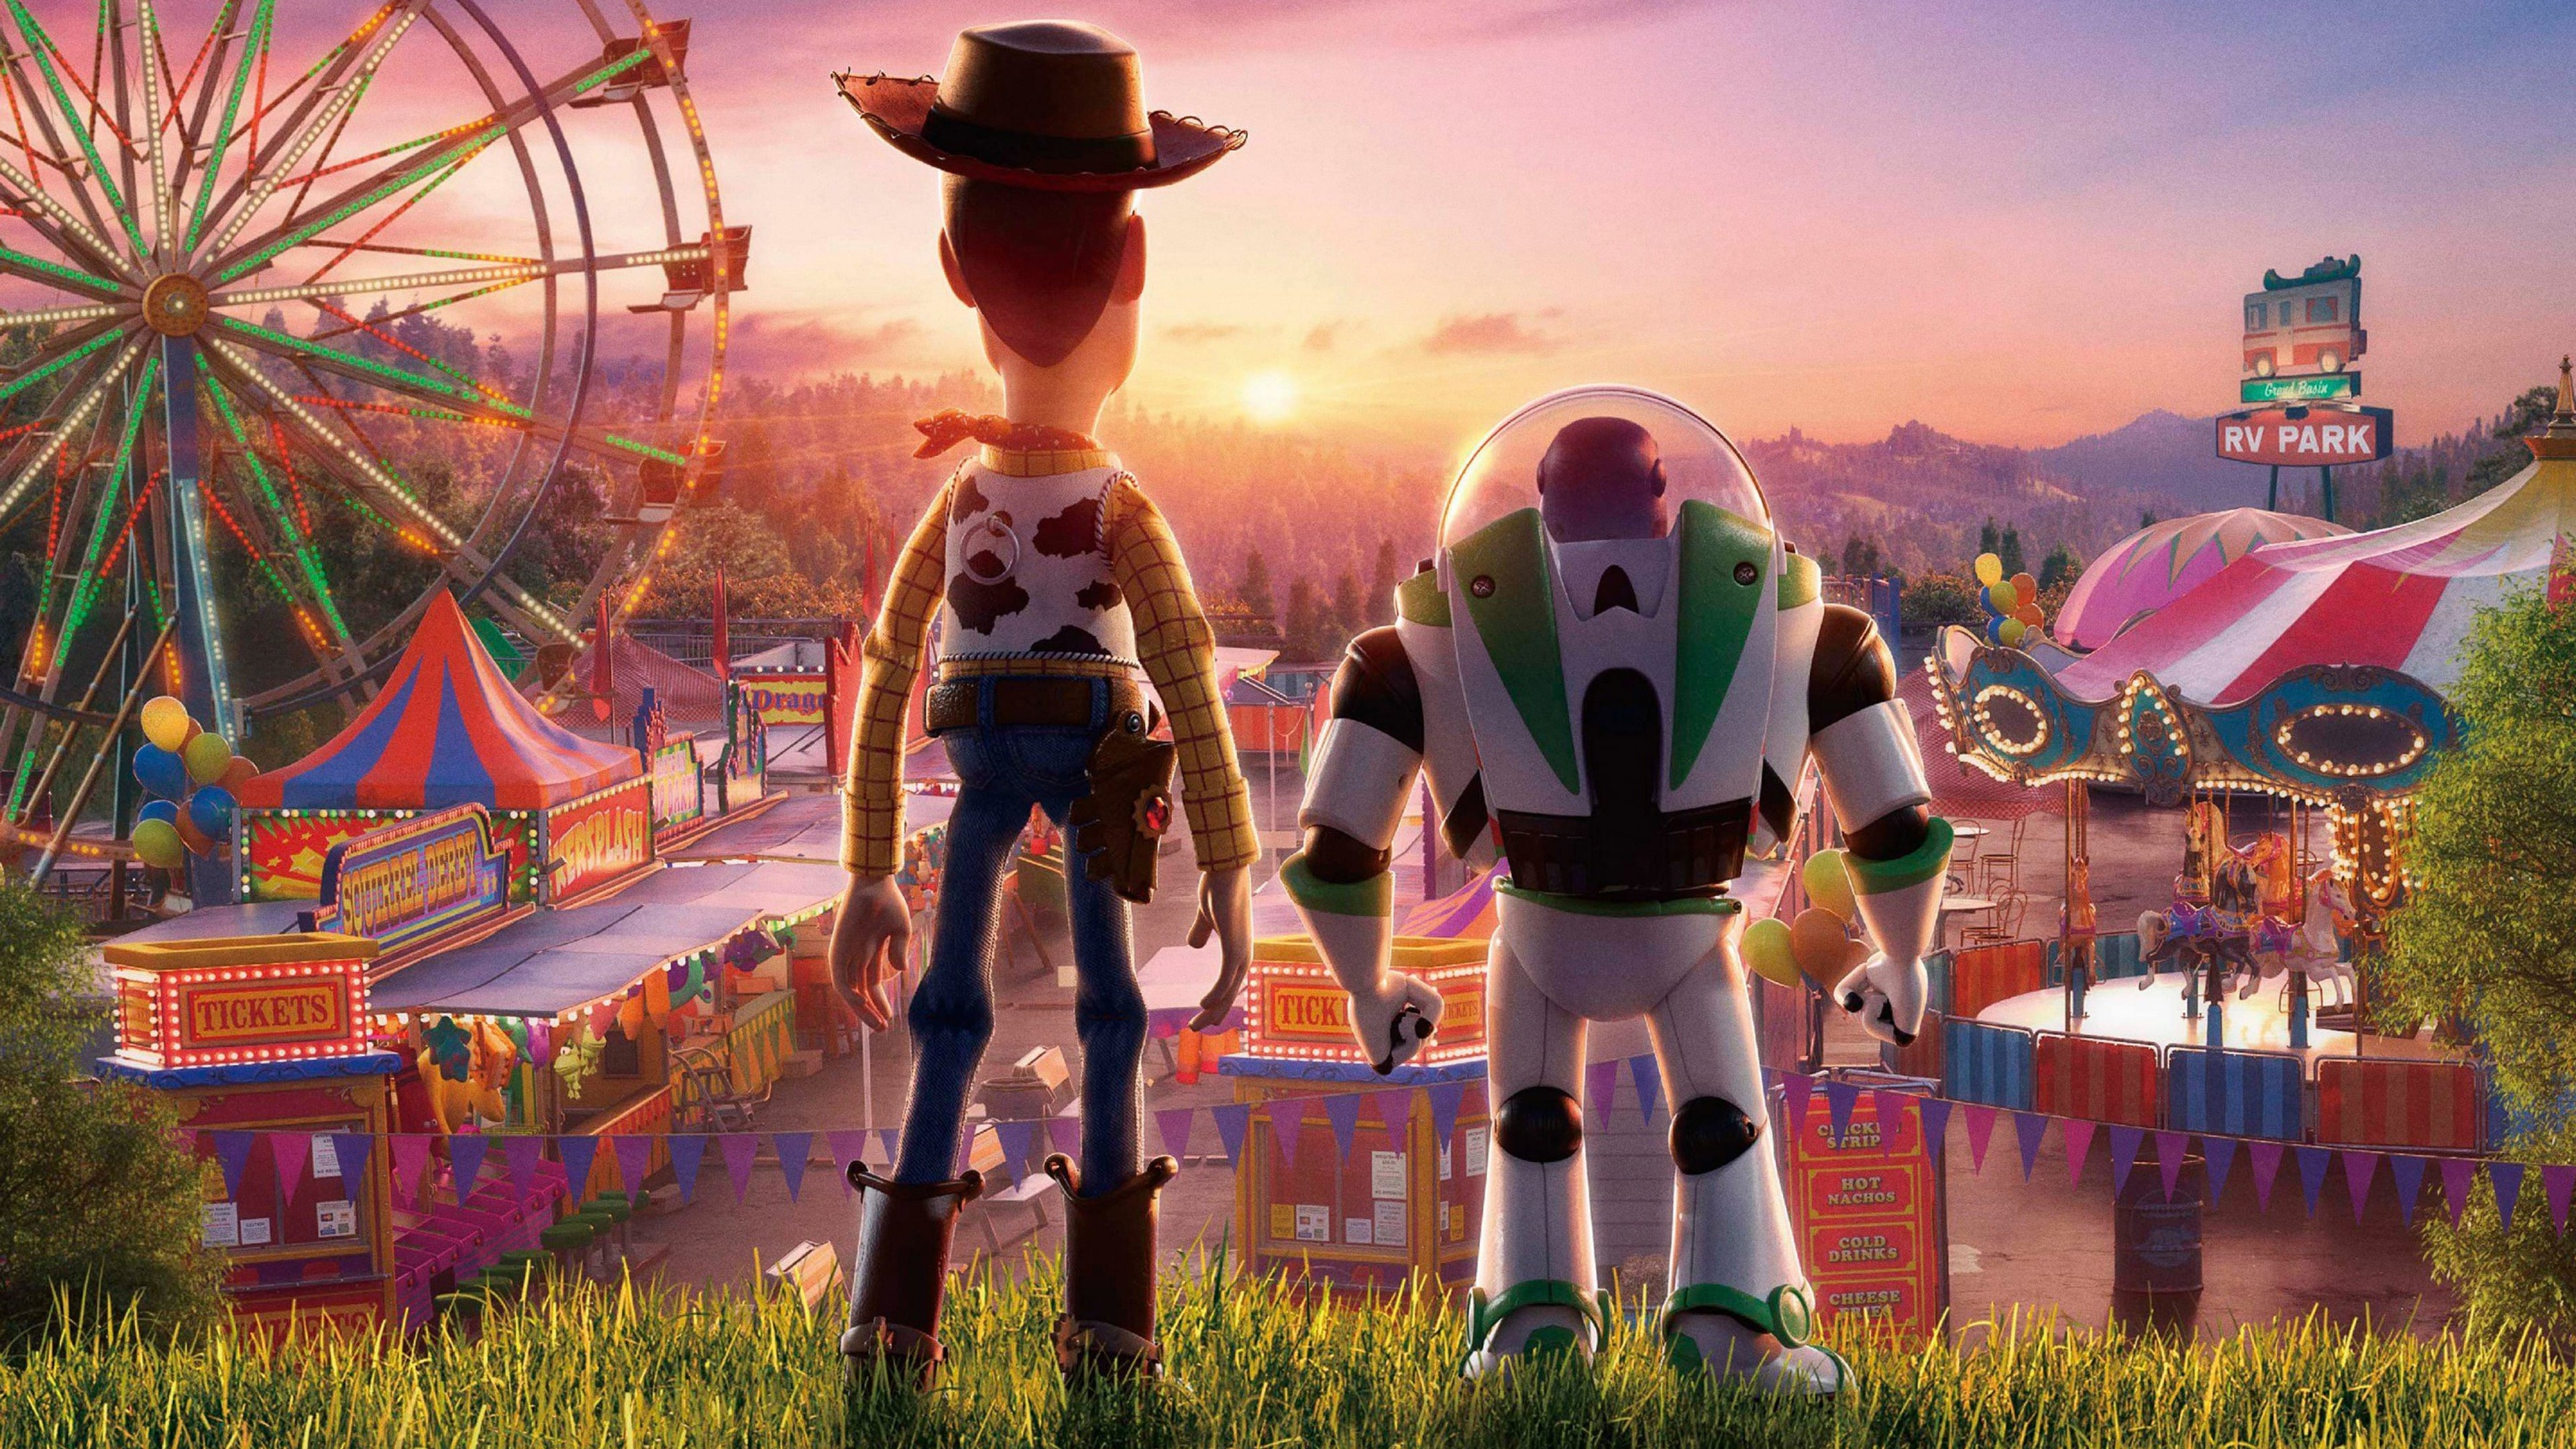 Toy Story 4 backdrop